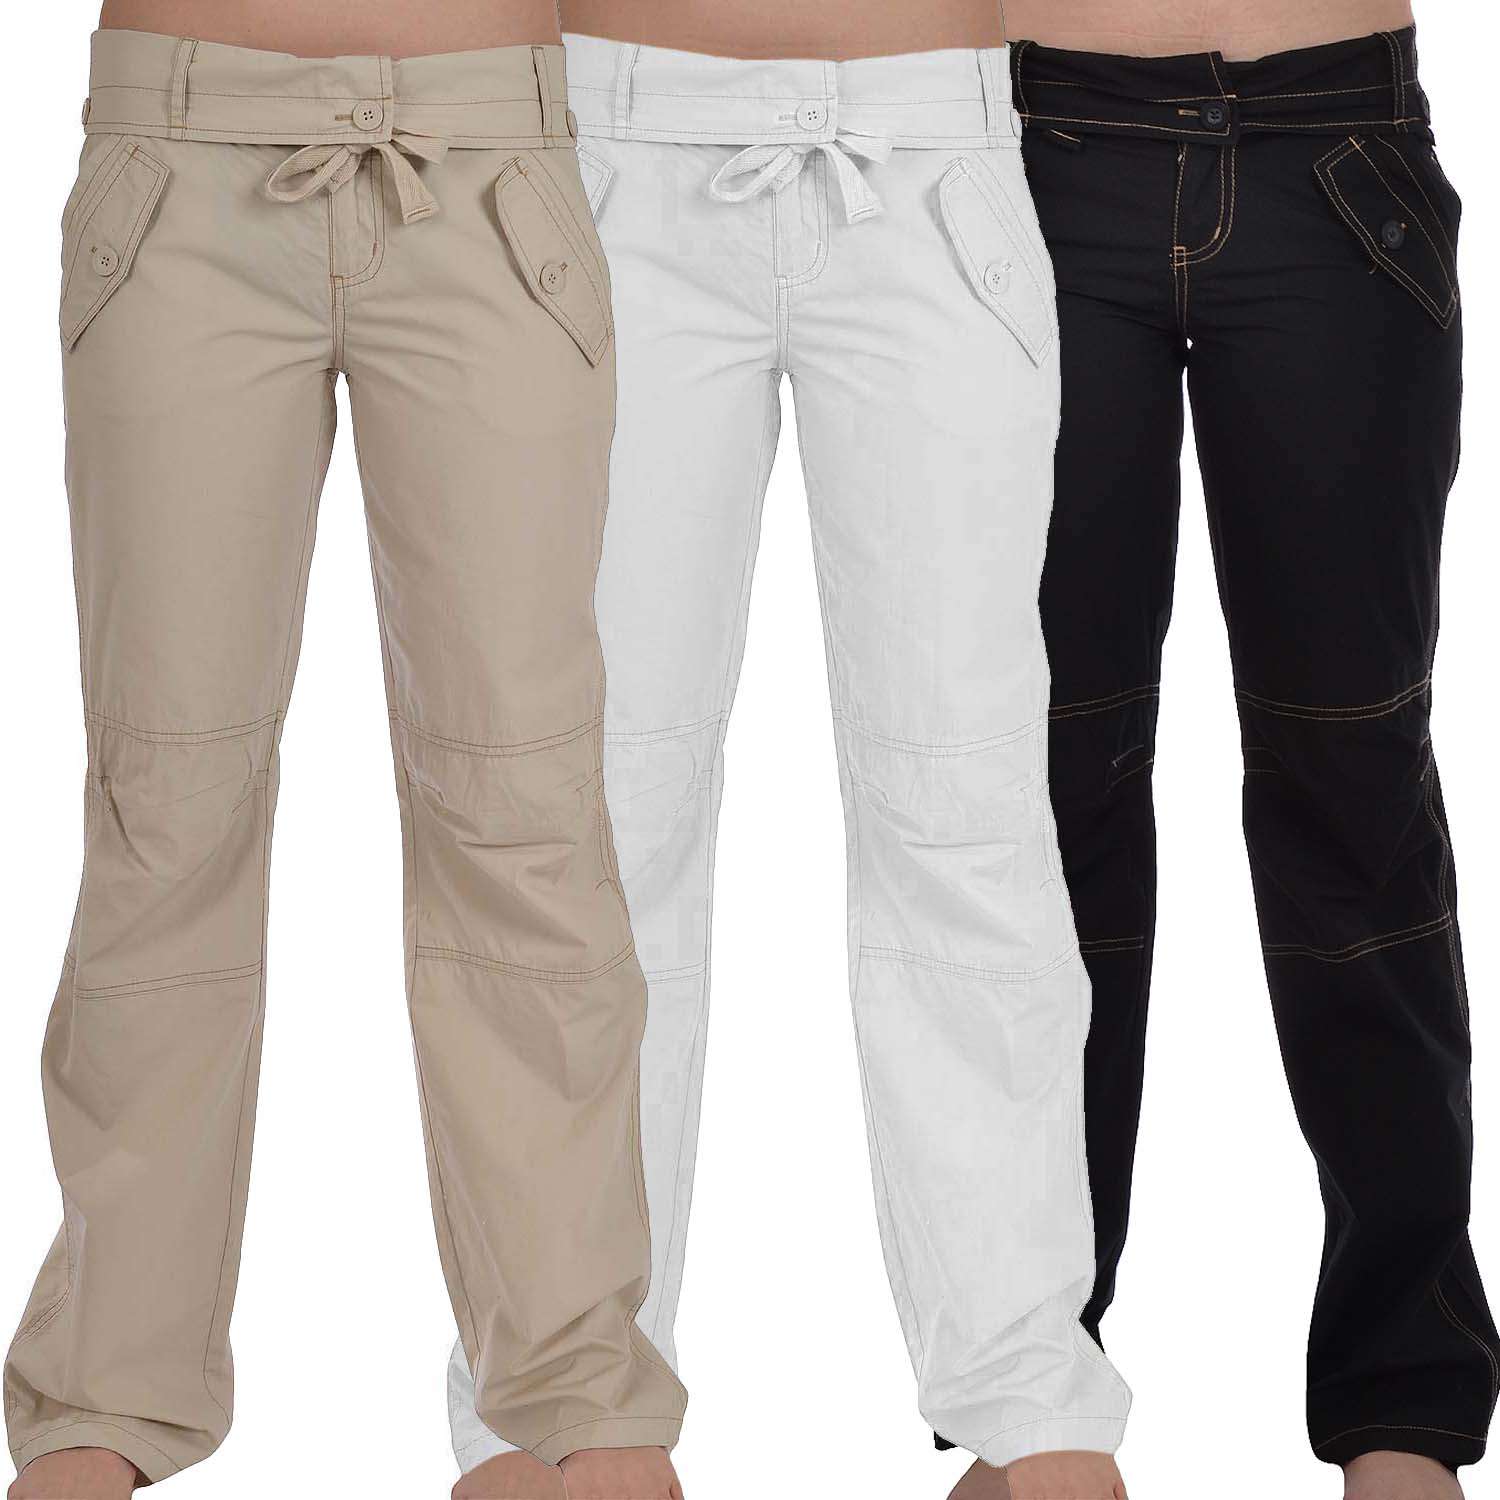 Excellent Womens Cargo Pants Ladies Casual Capri Shorts Work Walking Cotton